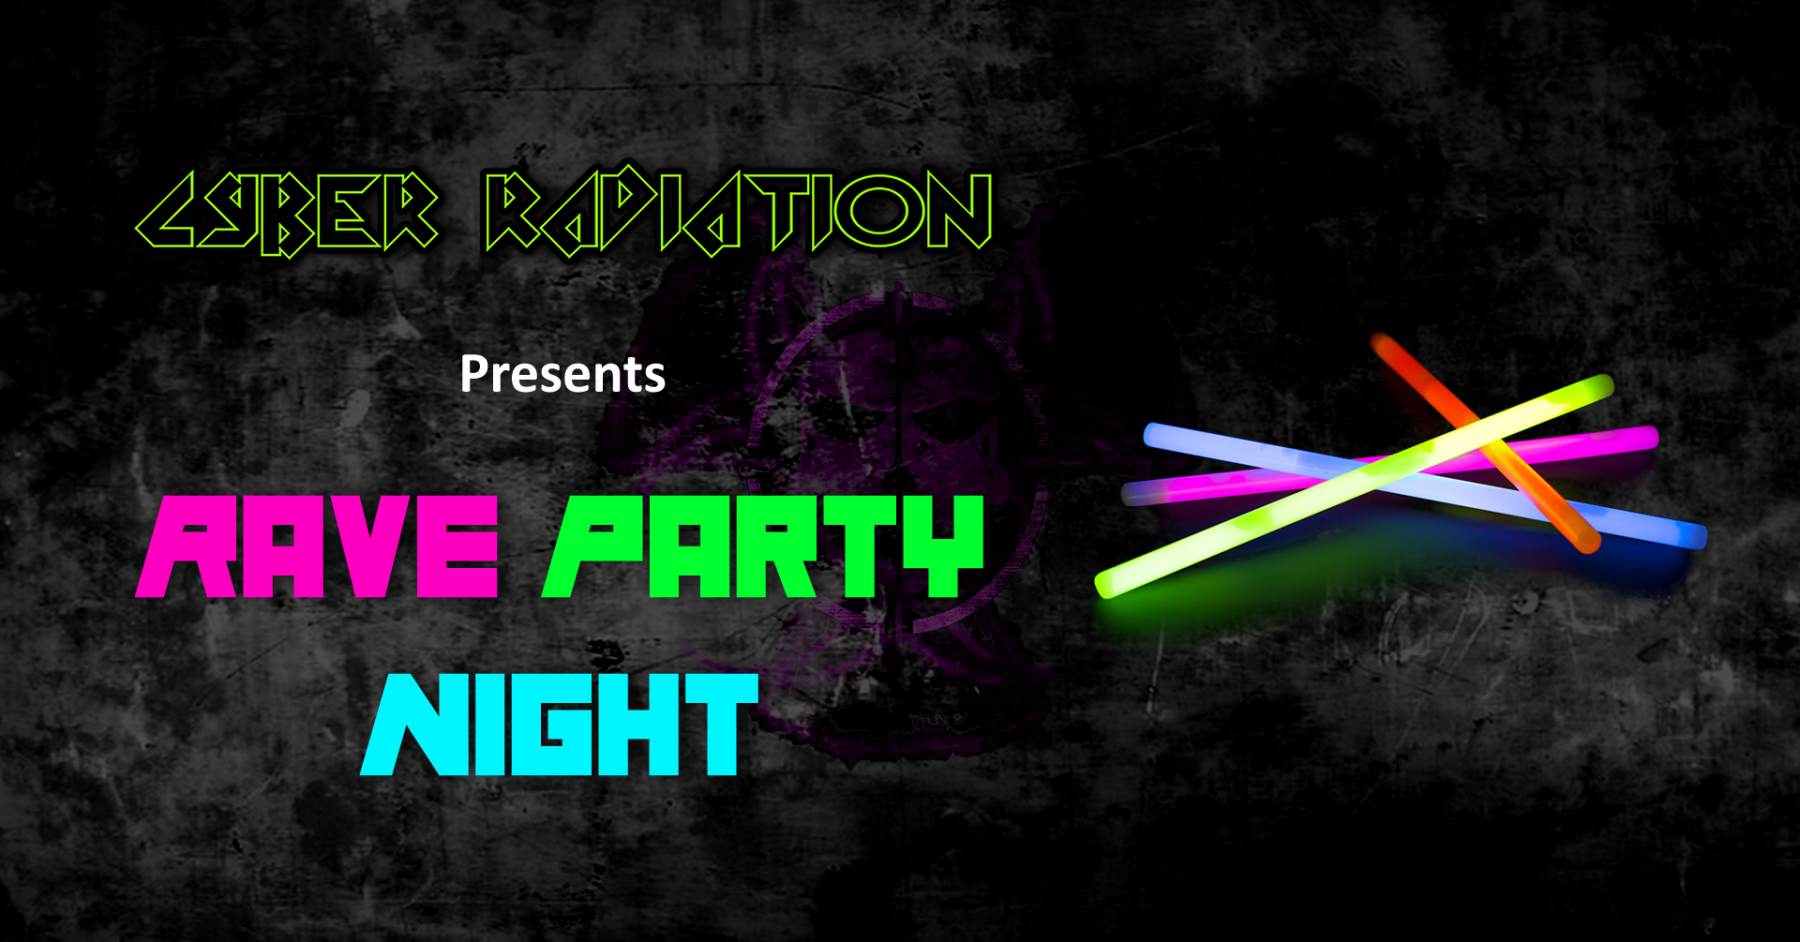 Club-Cyber-Radiation-Rave-Party-Night